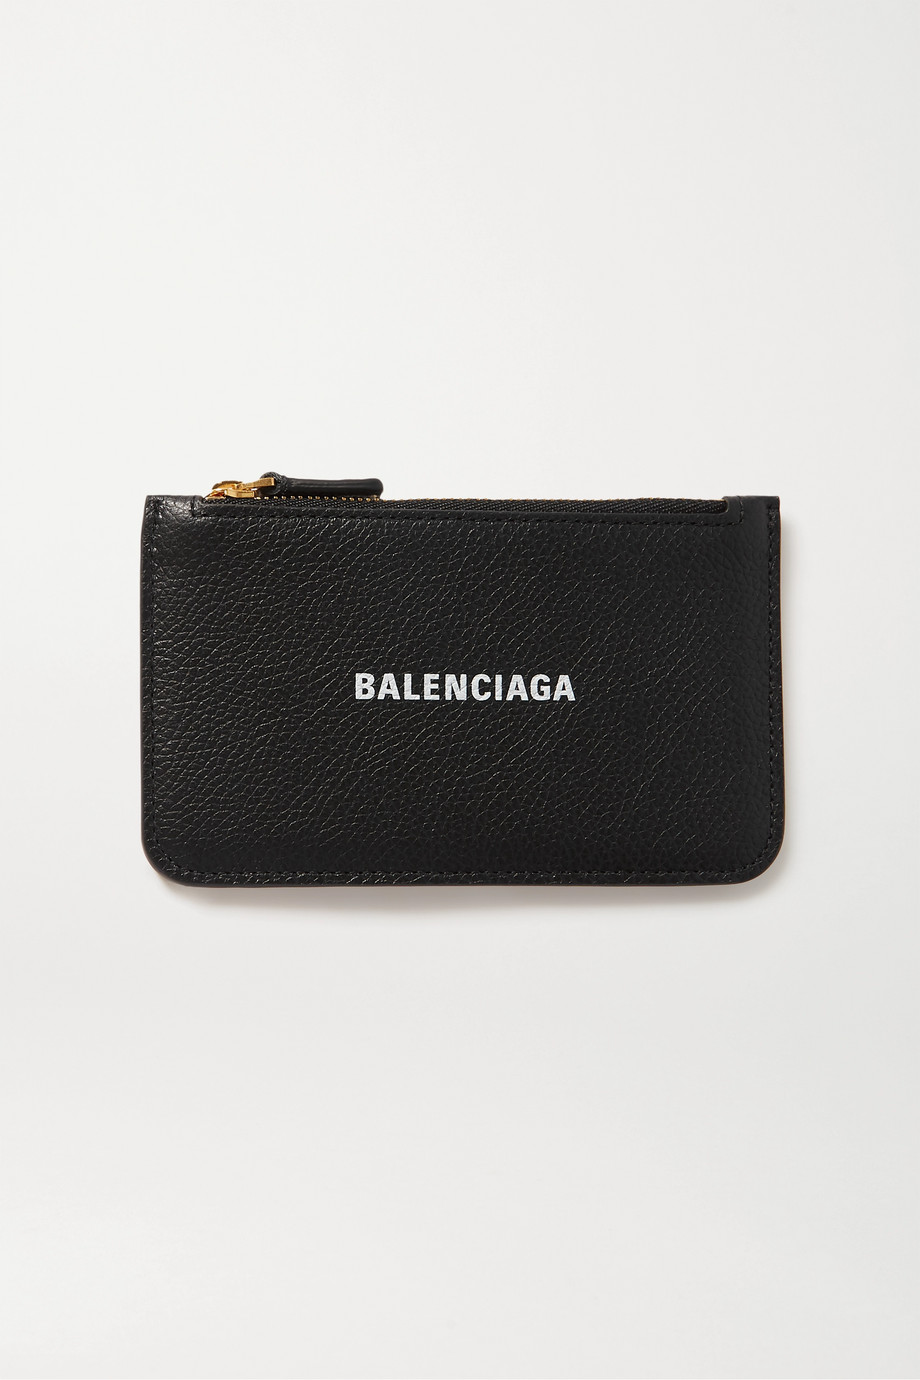 Balenciaga Cash printed textured-leather wallet